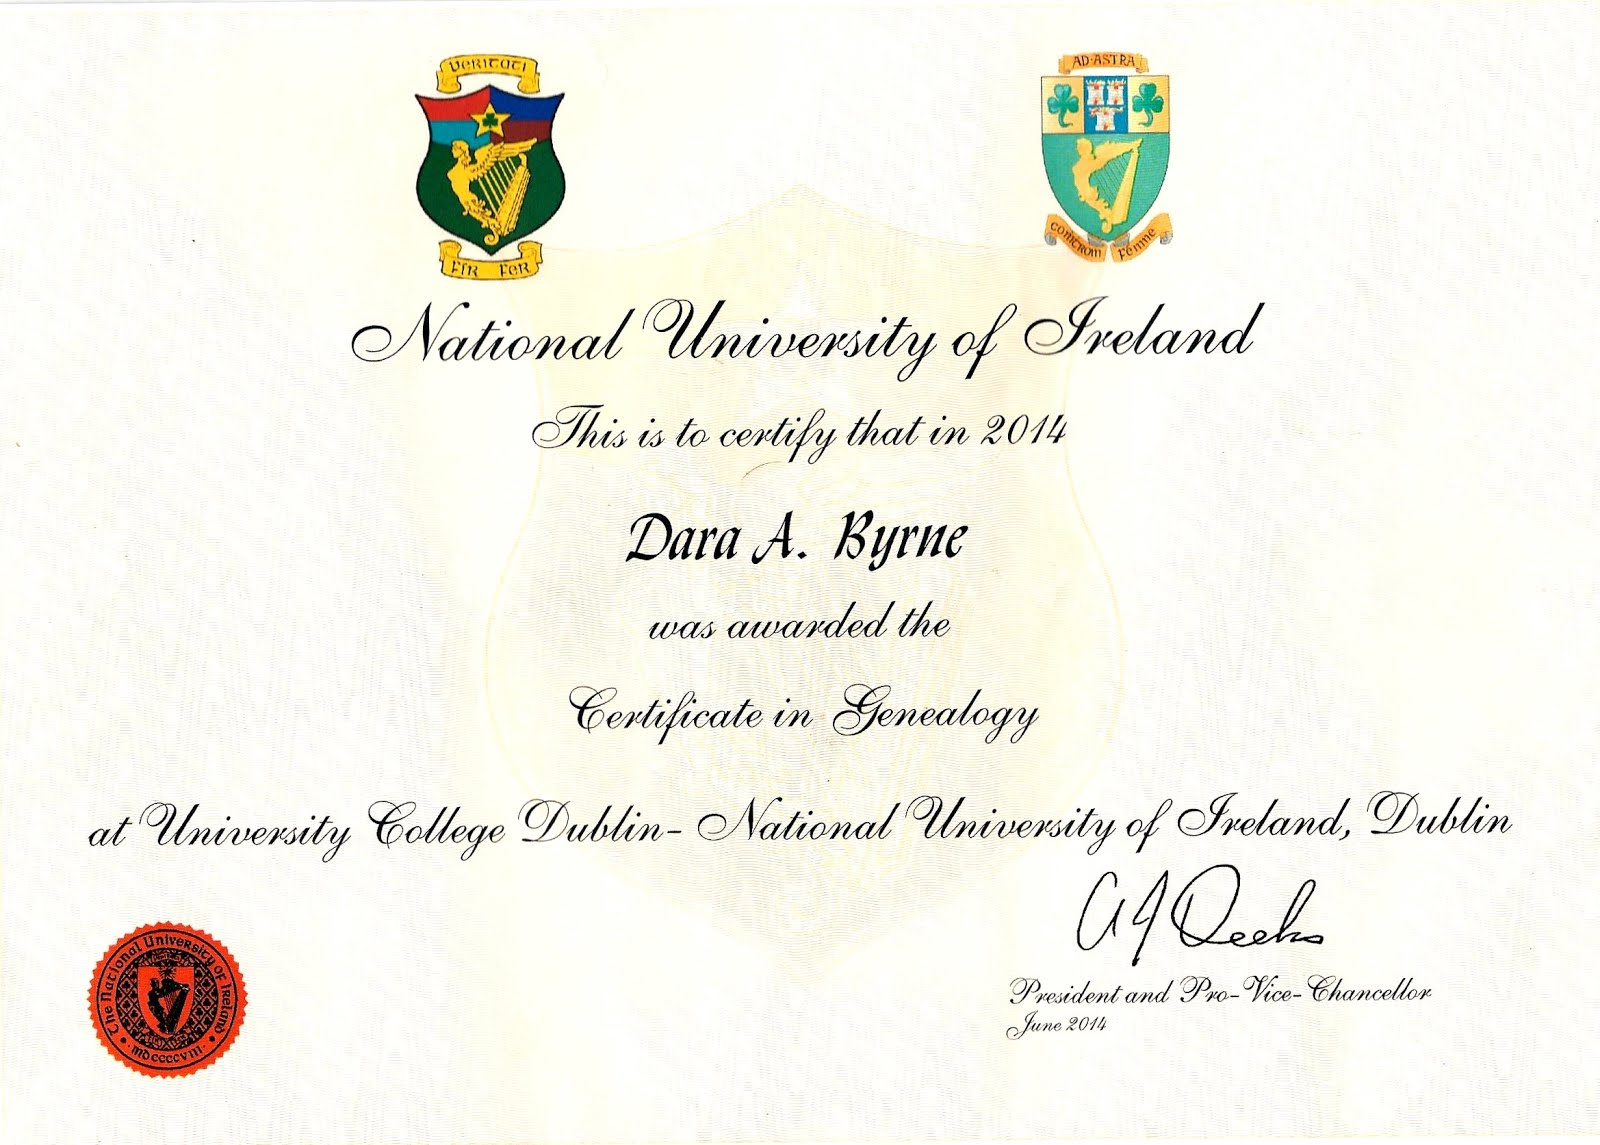 Certificate in Genealogy, 2014